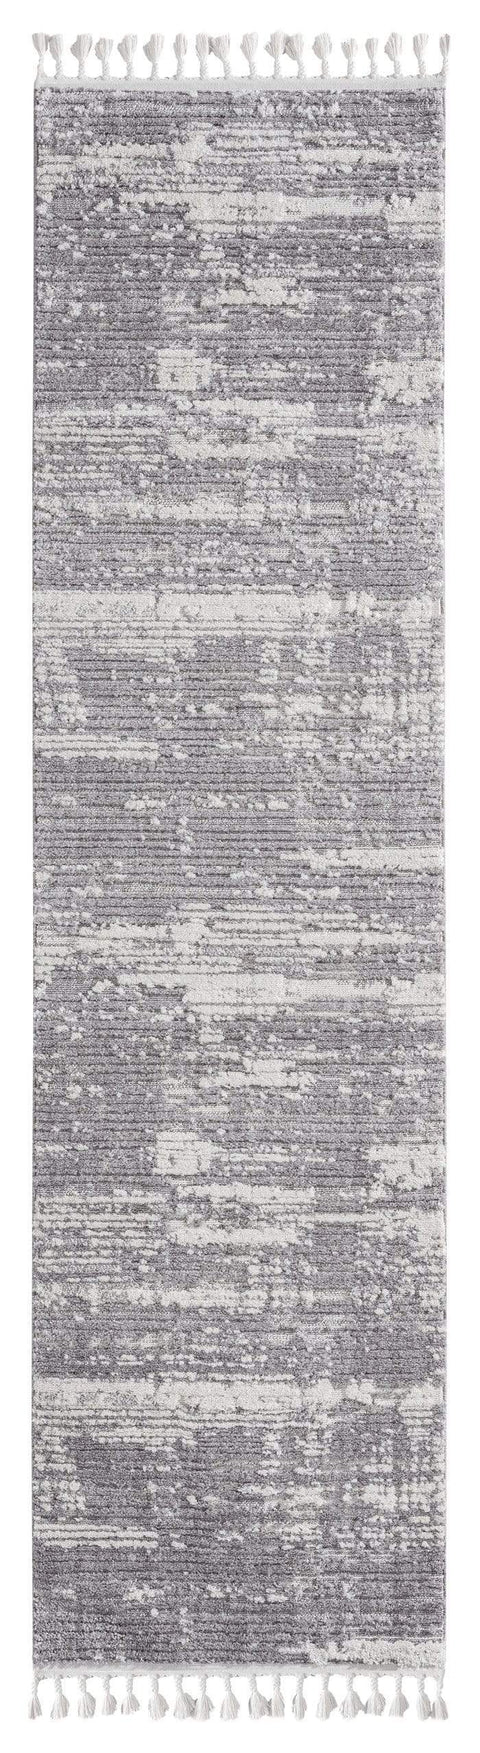 Alyssa Ivory Grey Textured Runner Rug